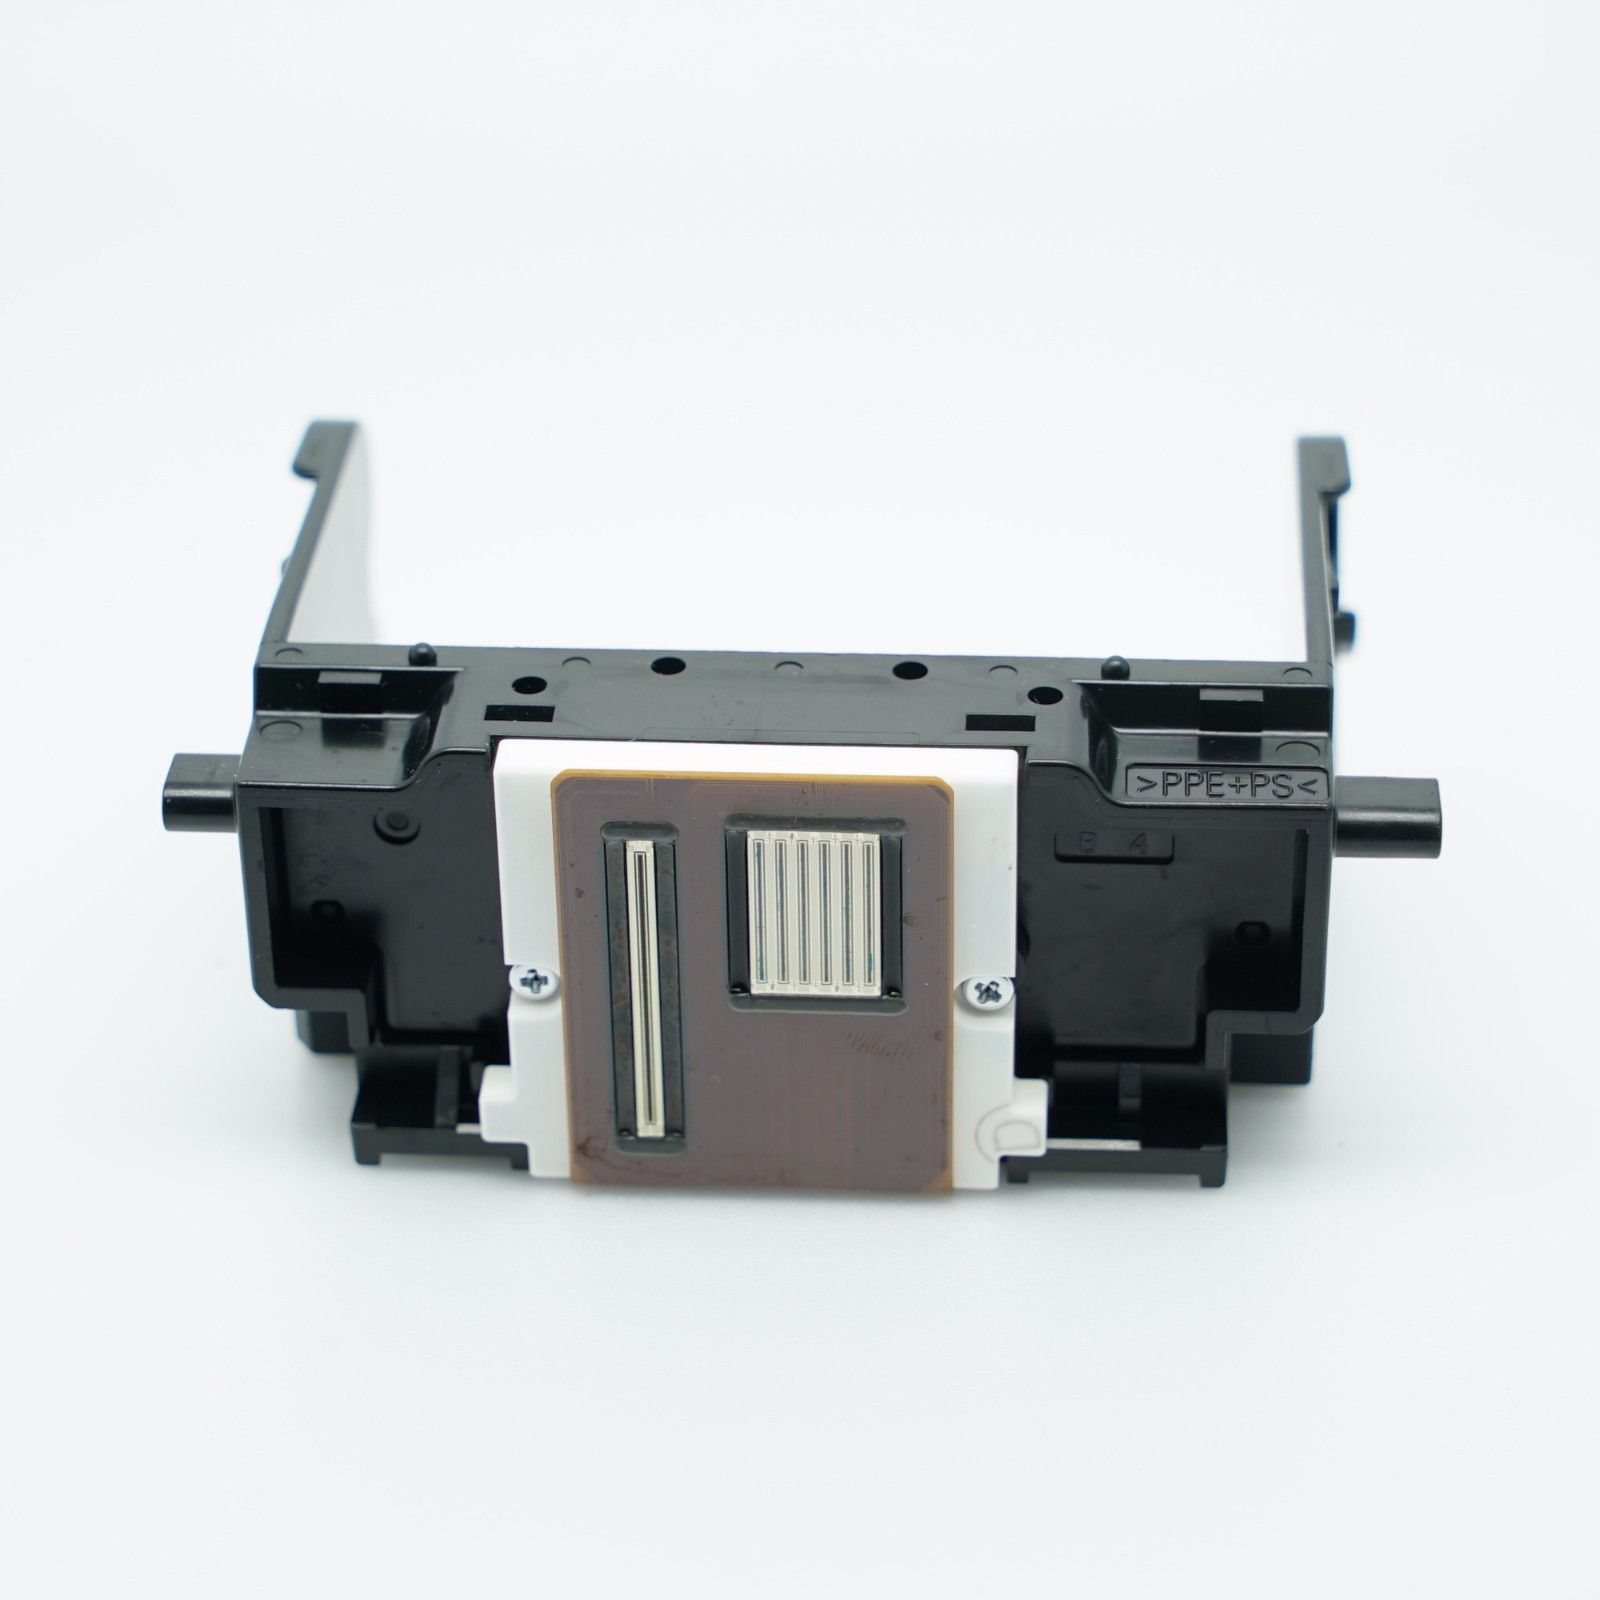 QY6-0067 Print Head FOR CANON iP5300 MP810 IP4500 MP610 shipping free new printhead qy6 0067 for canon ip4500 ip5300 mp610 mp810 printer parts